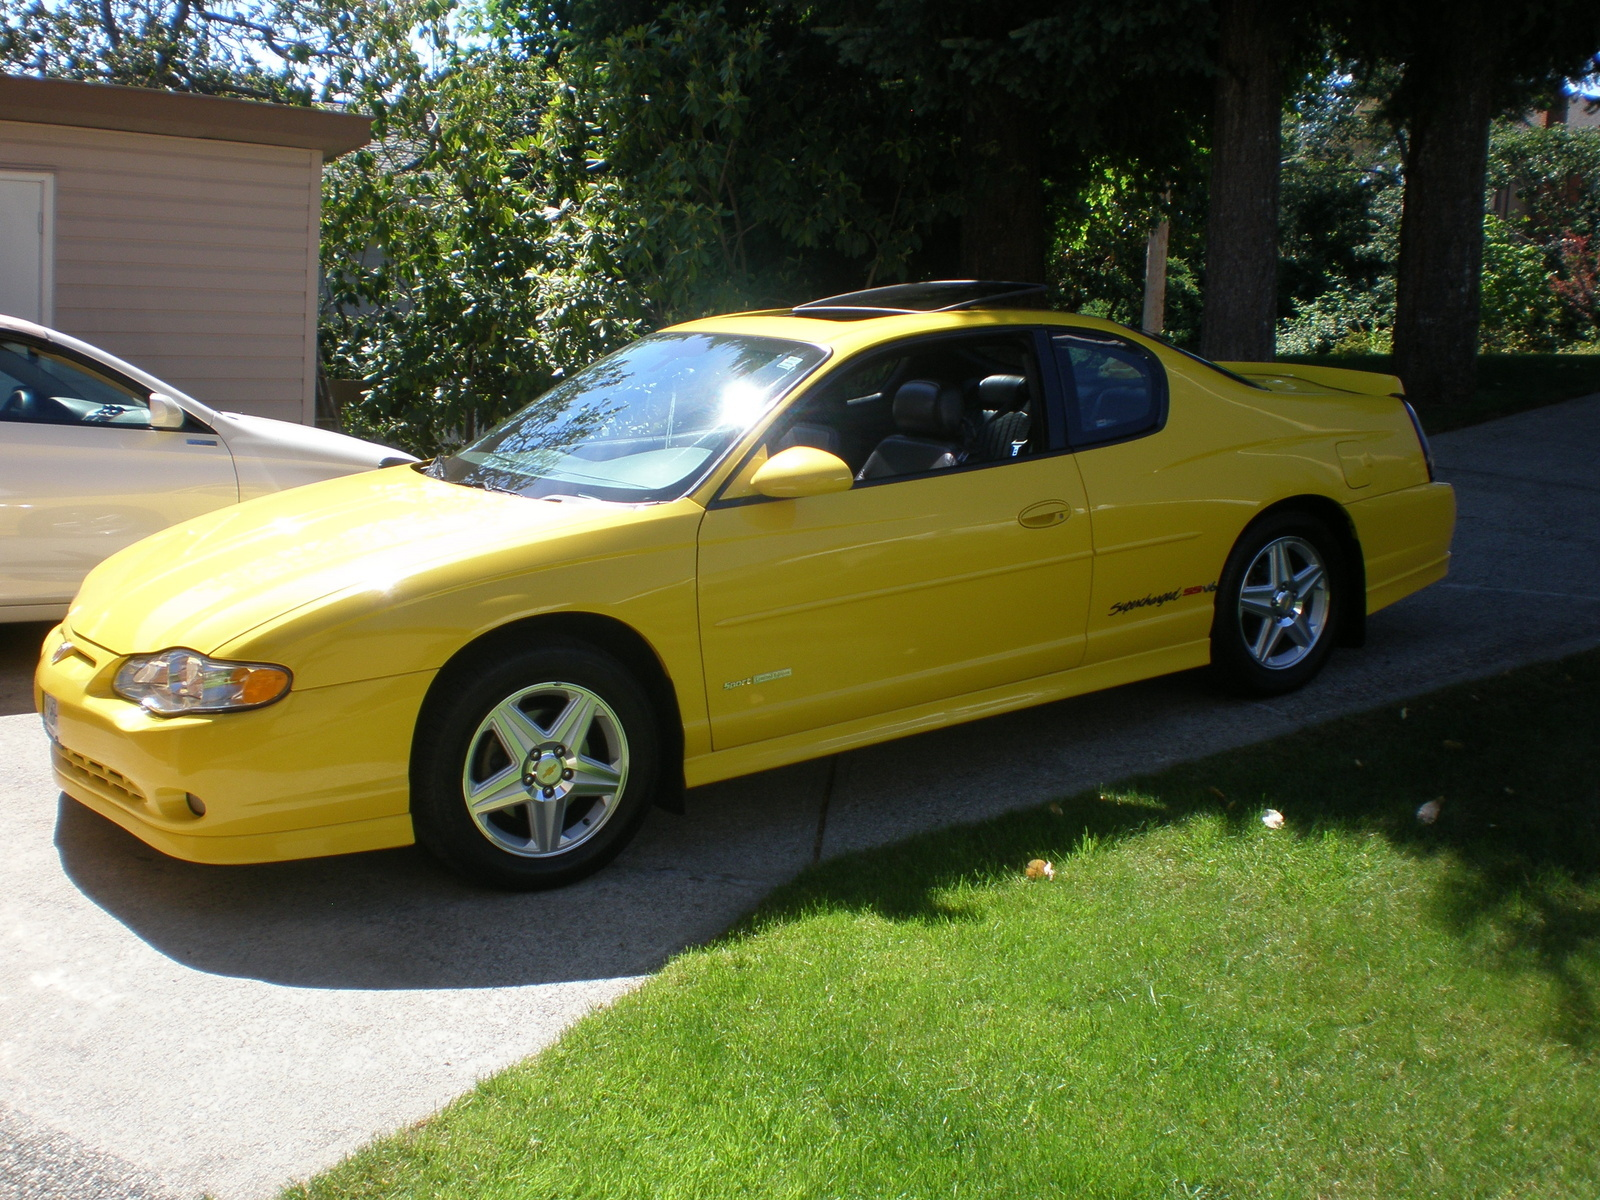 hight resolution of 2004 chevrolet monte carlo ss supercharged fwd corvette yellow 2004 chevy monte carlo ss supercharged chevrolet monte carlo compare grand prix